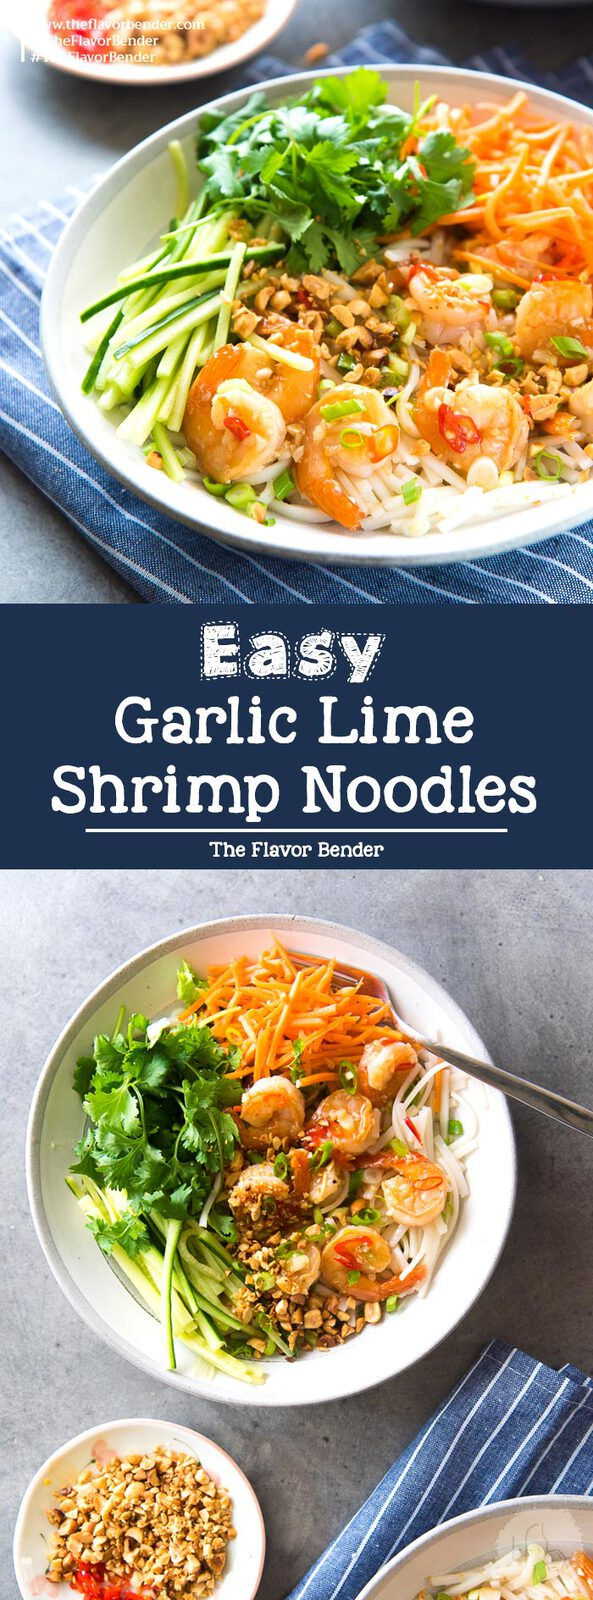 Garlic Lime Shrimp Rice Noodles - This rice noodle salad is perfect for lunch or dinner! Fresh, vibrant flavors and easy to make. Perfect for lunch boxes and for meal planning.